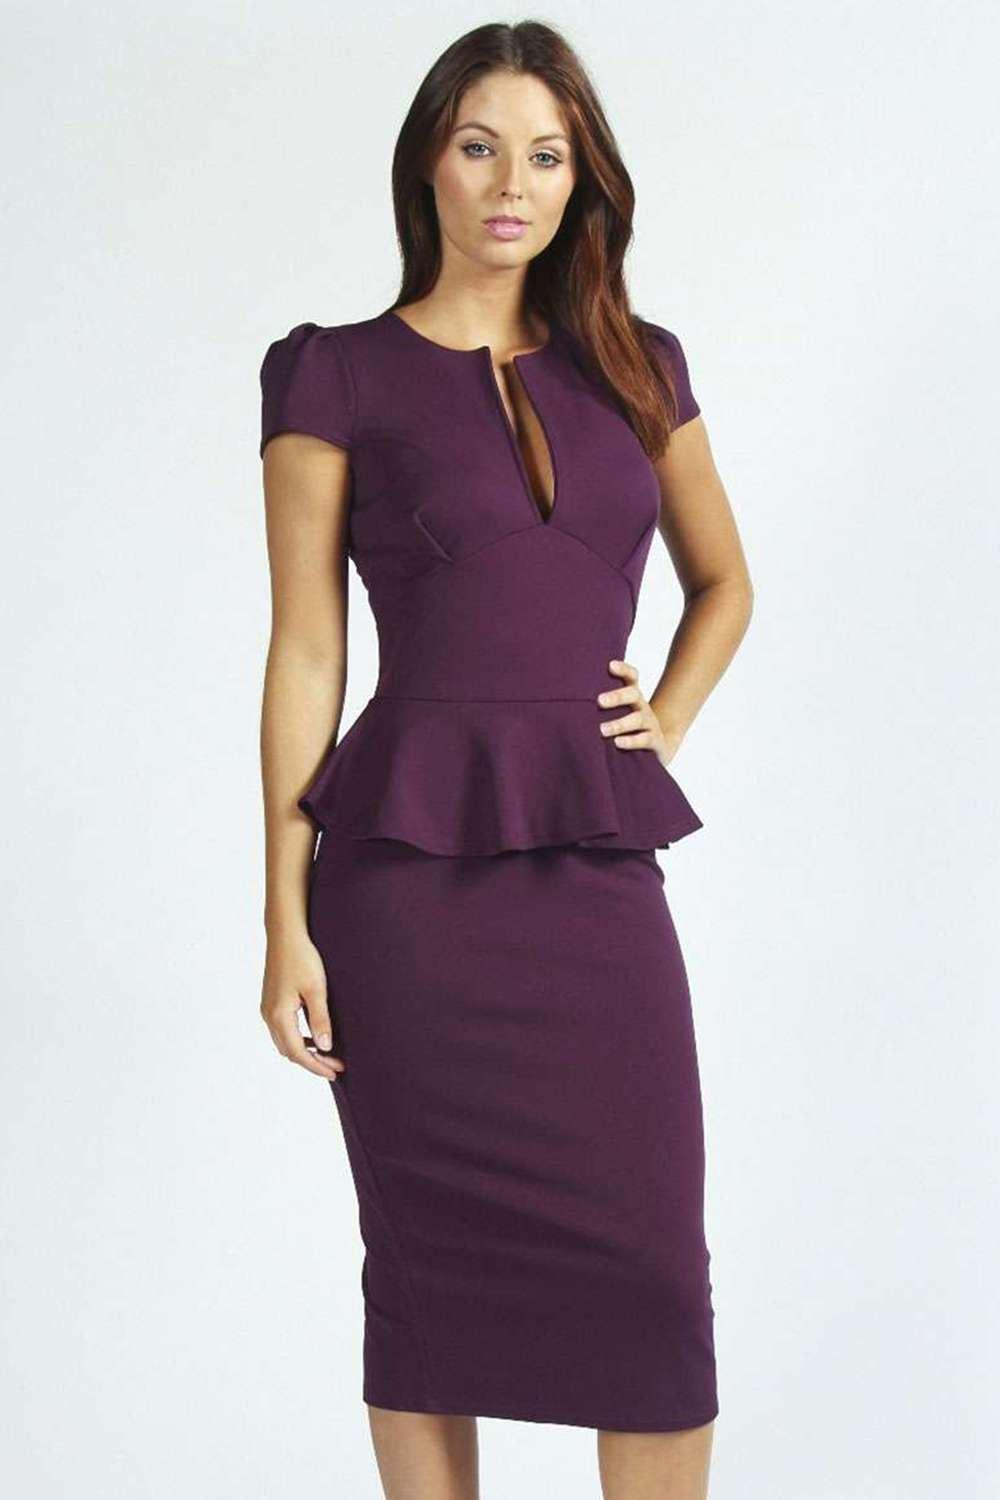 Find women's peplum dress at ShopStyle. Shop the latest collection of women's peplum dress from the most popular stores - all in one place.